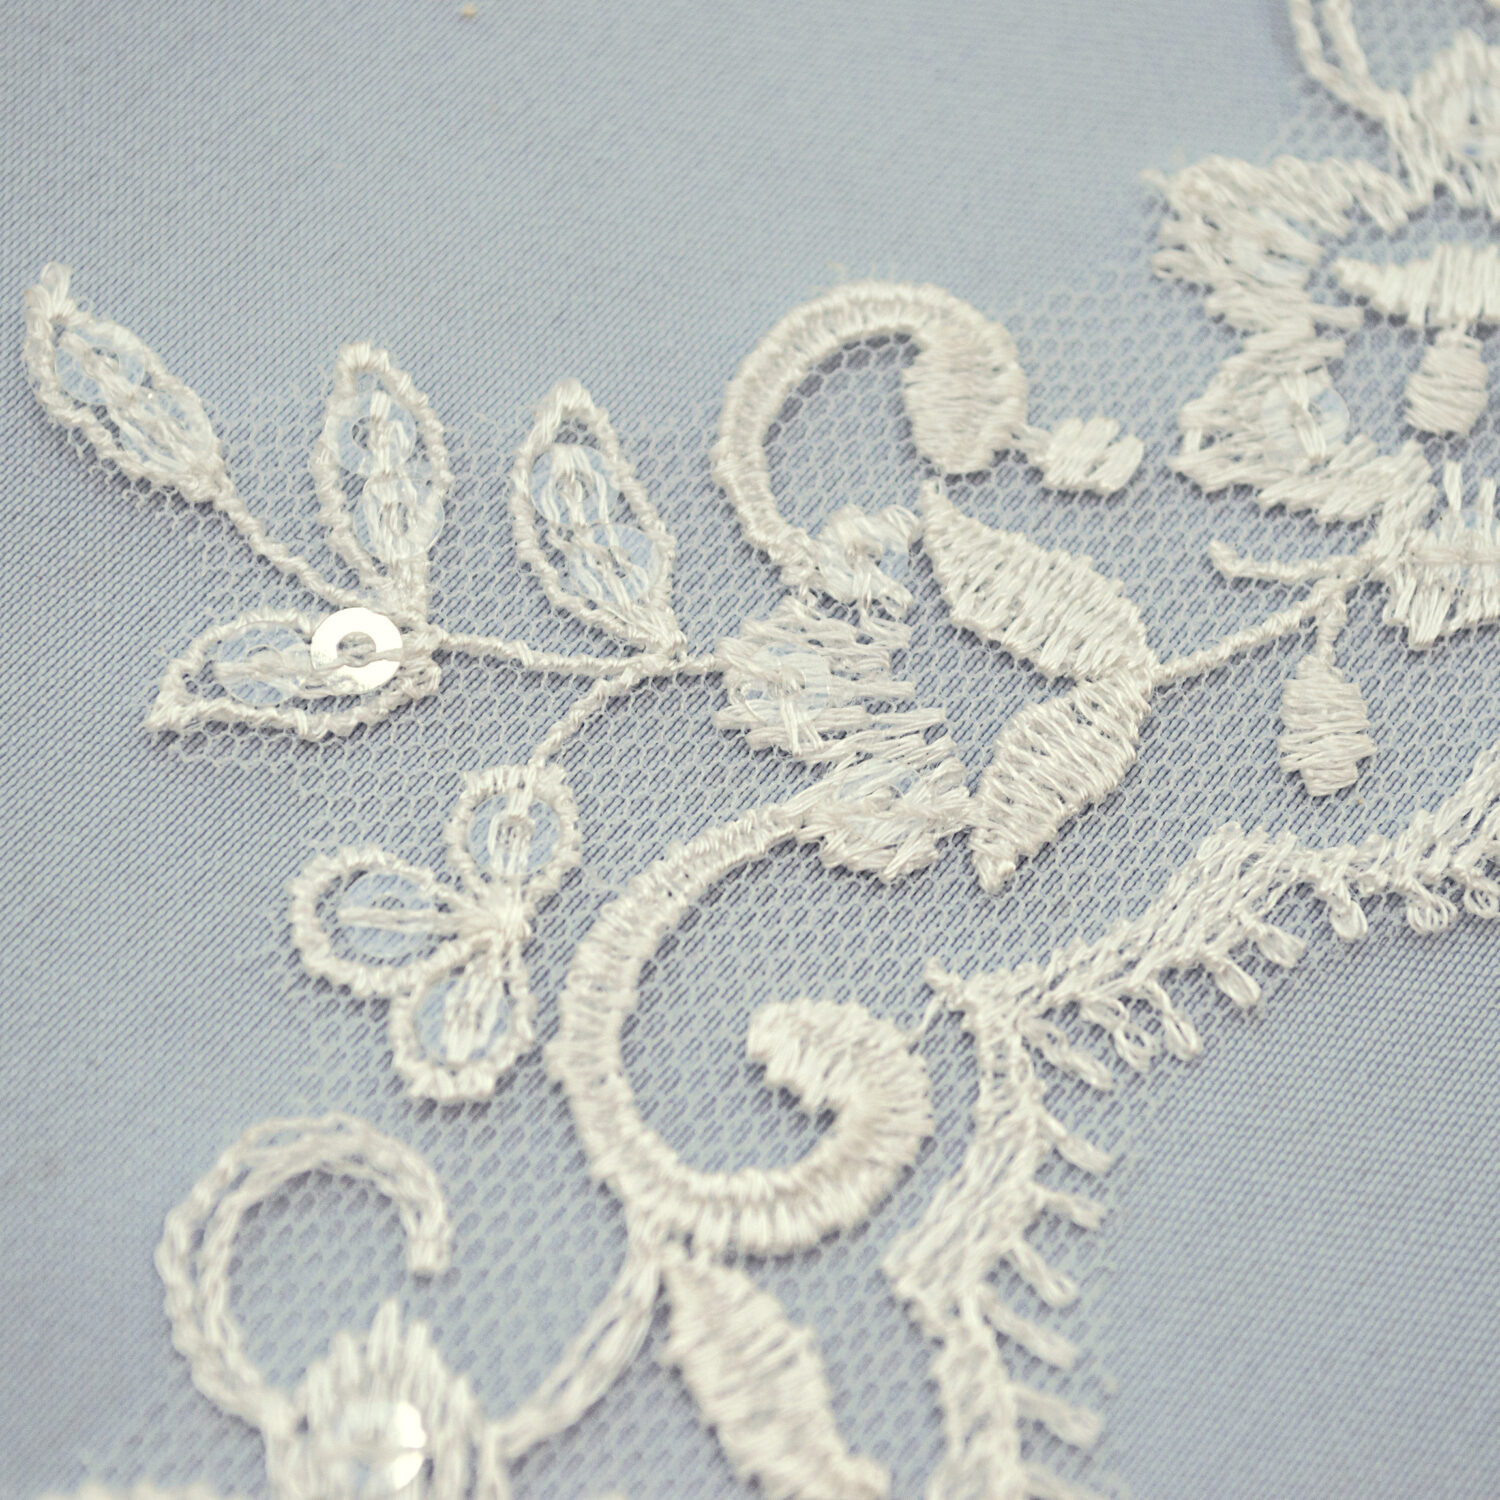 Sequined lace trim AB14151-1F-N44